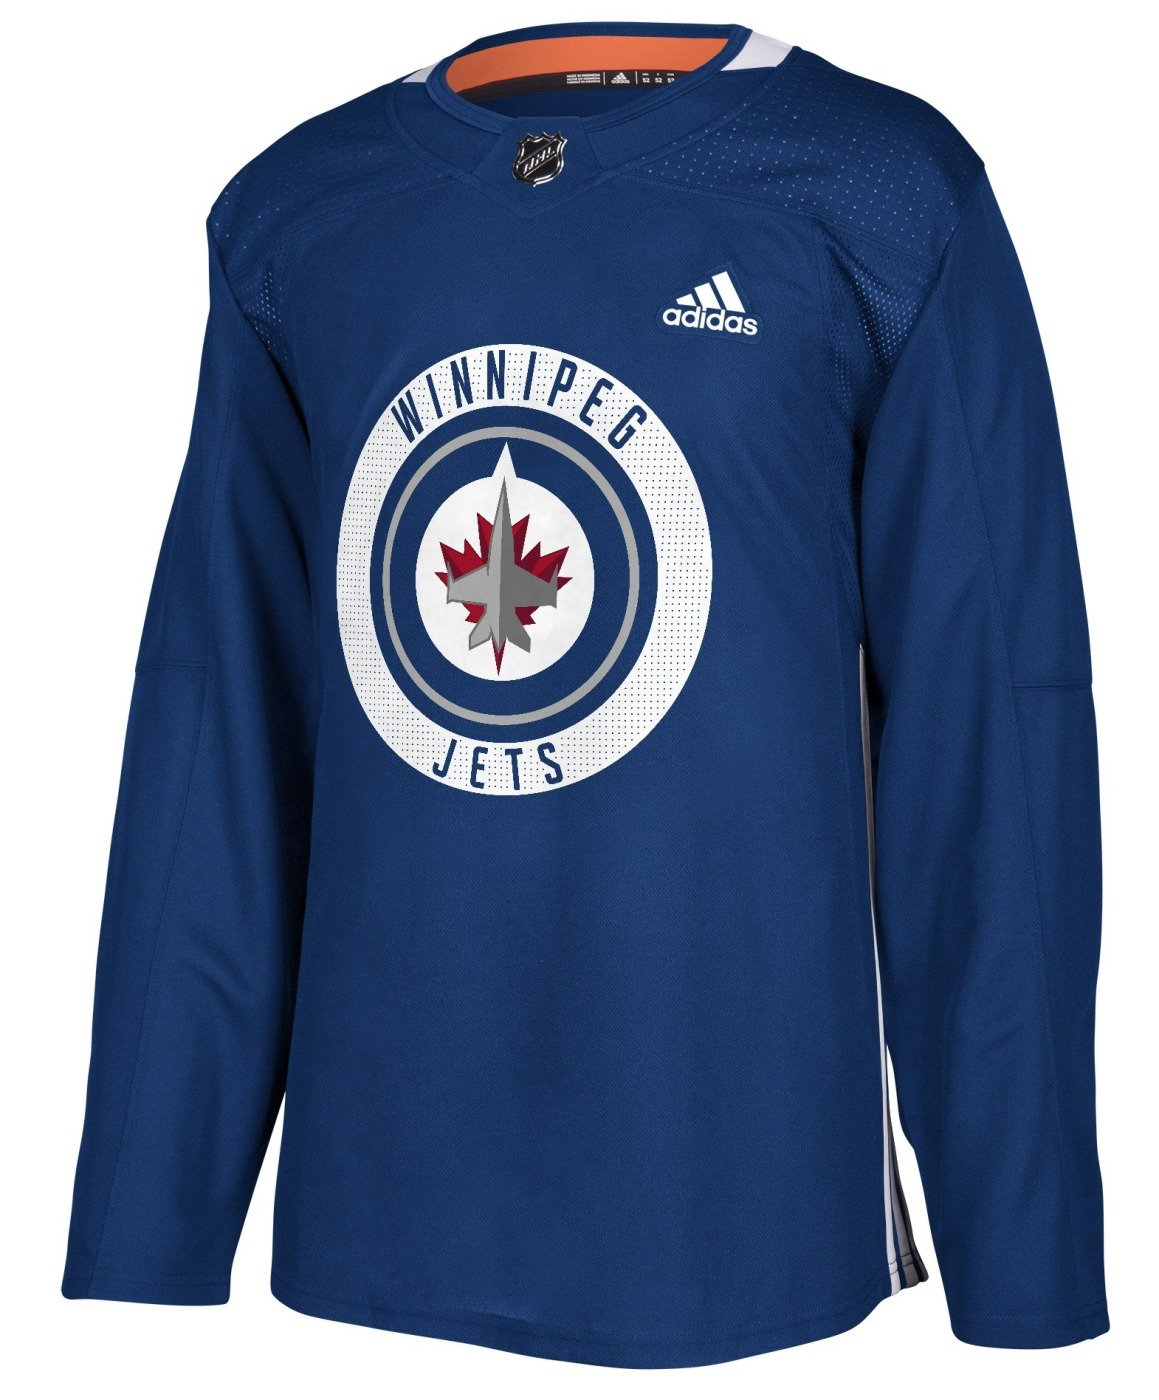 new style 31d6e 6662a Winnipeg Jets Adidas NHL Men's Climalite Authentic Practice ...